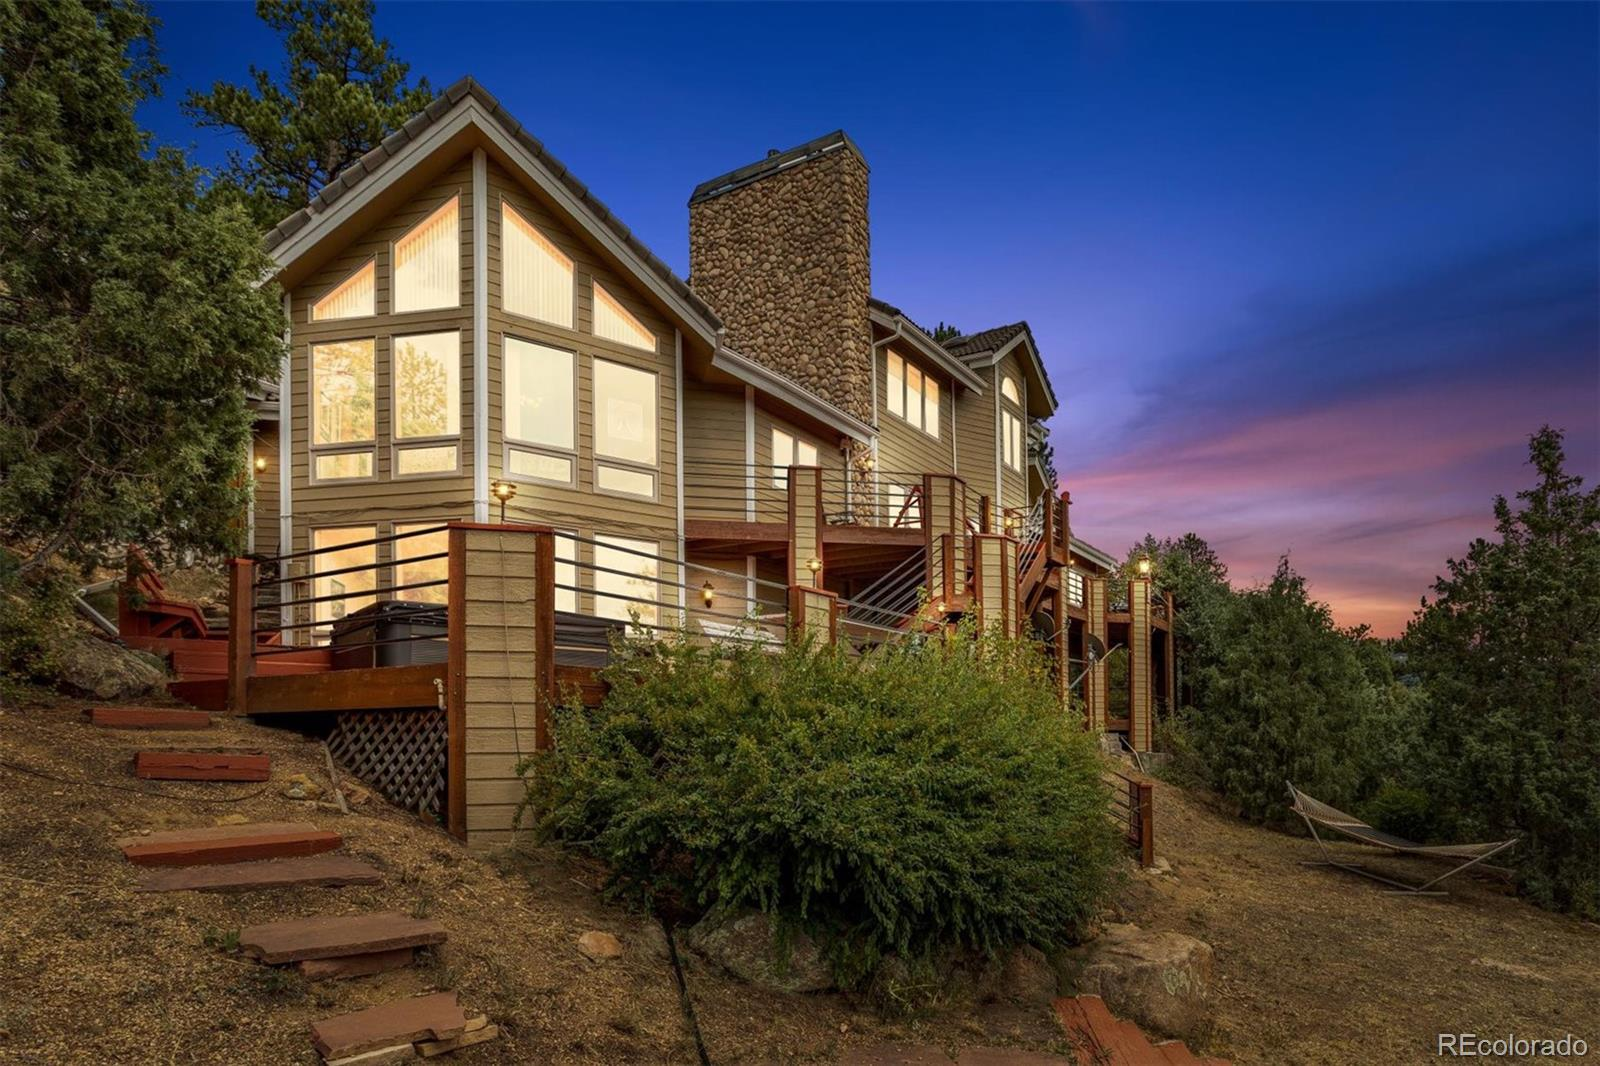 Large, custom home in north Evergreen, with sweeping Mountain Views! The end of cul-de-sac, 3.4 acre, private lot is mostly natural and pristine, and partly terraced for outdoor use and enjoyment. Large Windows bring that amazing view into almost every living space, while multiple decks invite you outside to play or just relax on the deck or in the hot tub, and breathe the clean mountain air. The deer and elks sightings are endless. Outdoors or indoors, this home entertains fantastically! Your family and guests will gather in the huge cherry wood kitchen and adjacent hearth room, or in the huge, vaulted living room with fireplace and a wall of windows to the West. They may also choose the walkout lower-level family room for TV and movies, or billiards, or whatever your preferred recreation. The Master Suite is on a floor by itself and enjoys its own fireplace and those coveted mountain views which extends even to the large, five-piece master bath. There are two office opportunities. One is on the level with the master suite, and the other is adjacent to the lower-level bedrooms. You will most certainly appreciate the attached four-car garage and the large workshop that was added on. Lots of guest parking and easy turn-around. And there's a treehouse! Plus much, much more!!